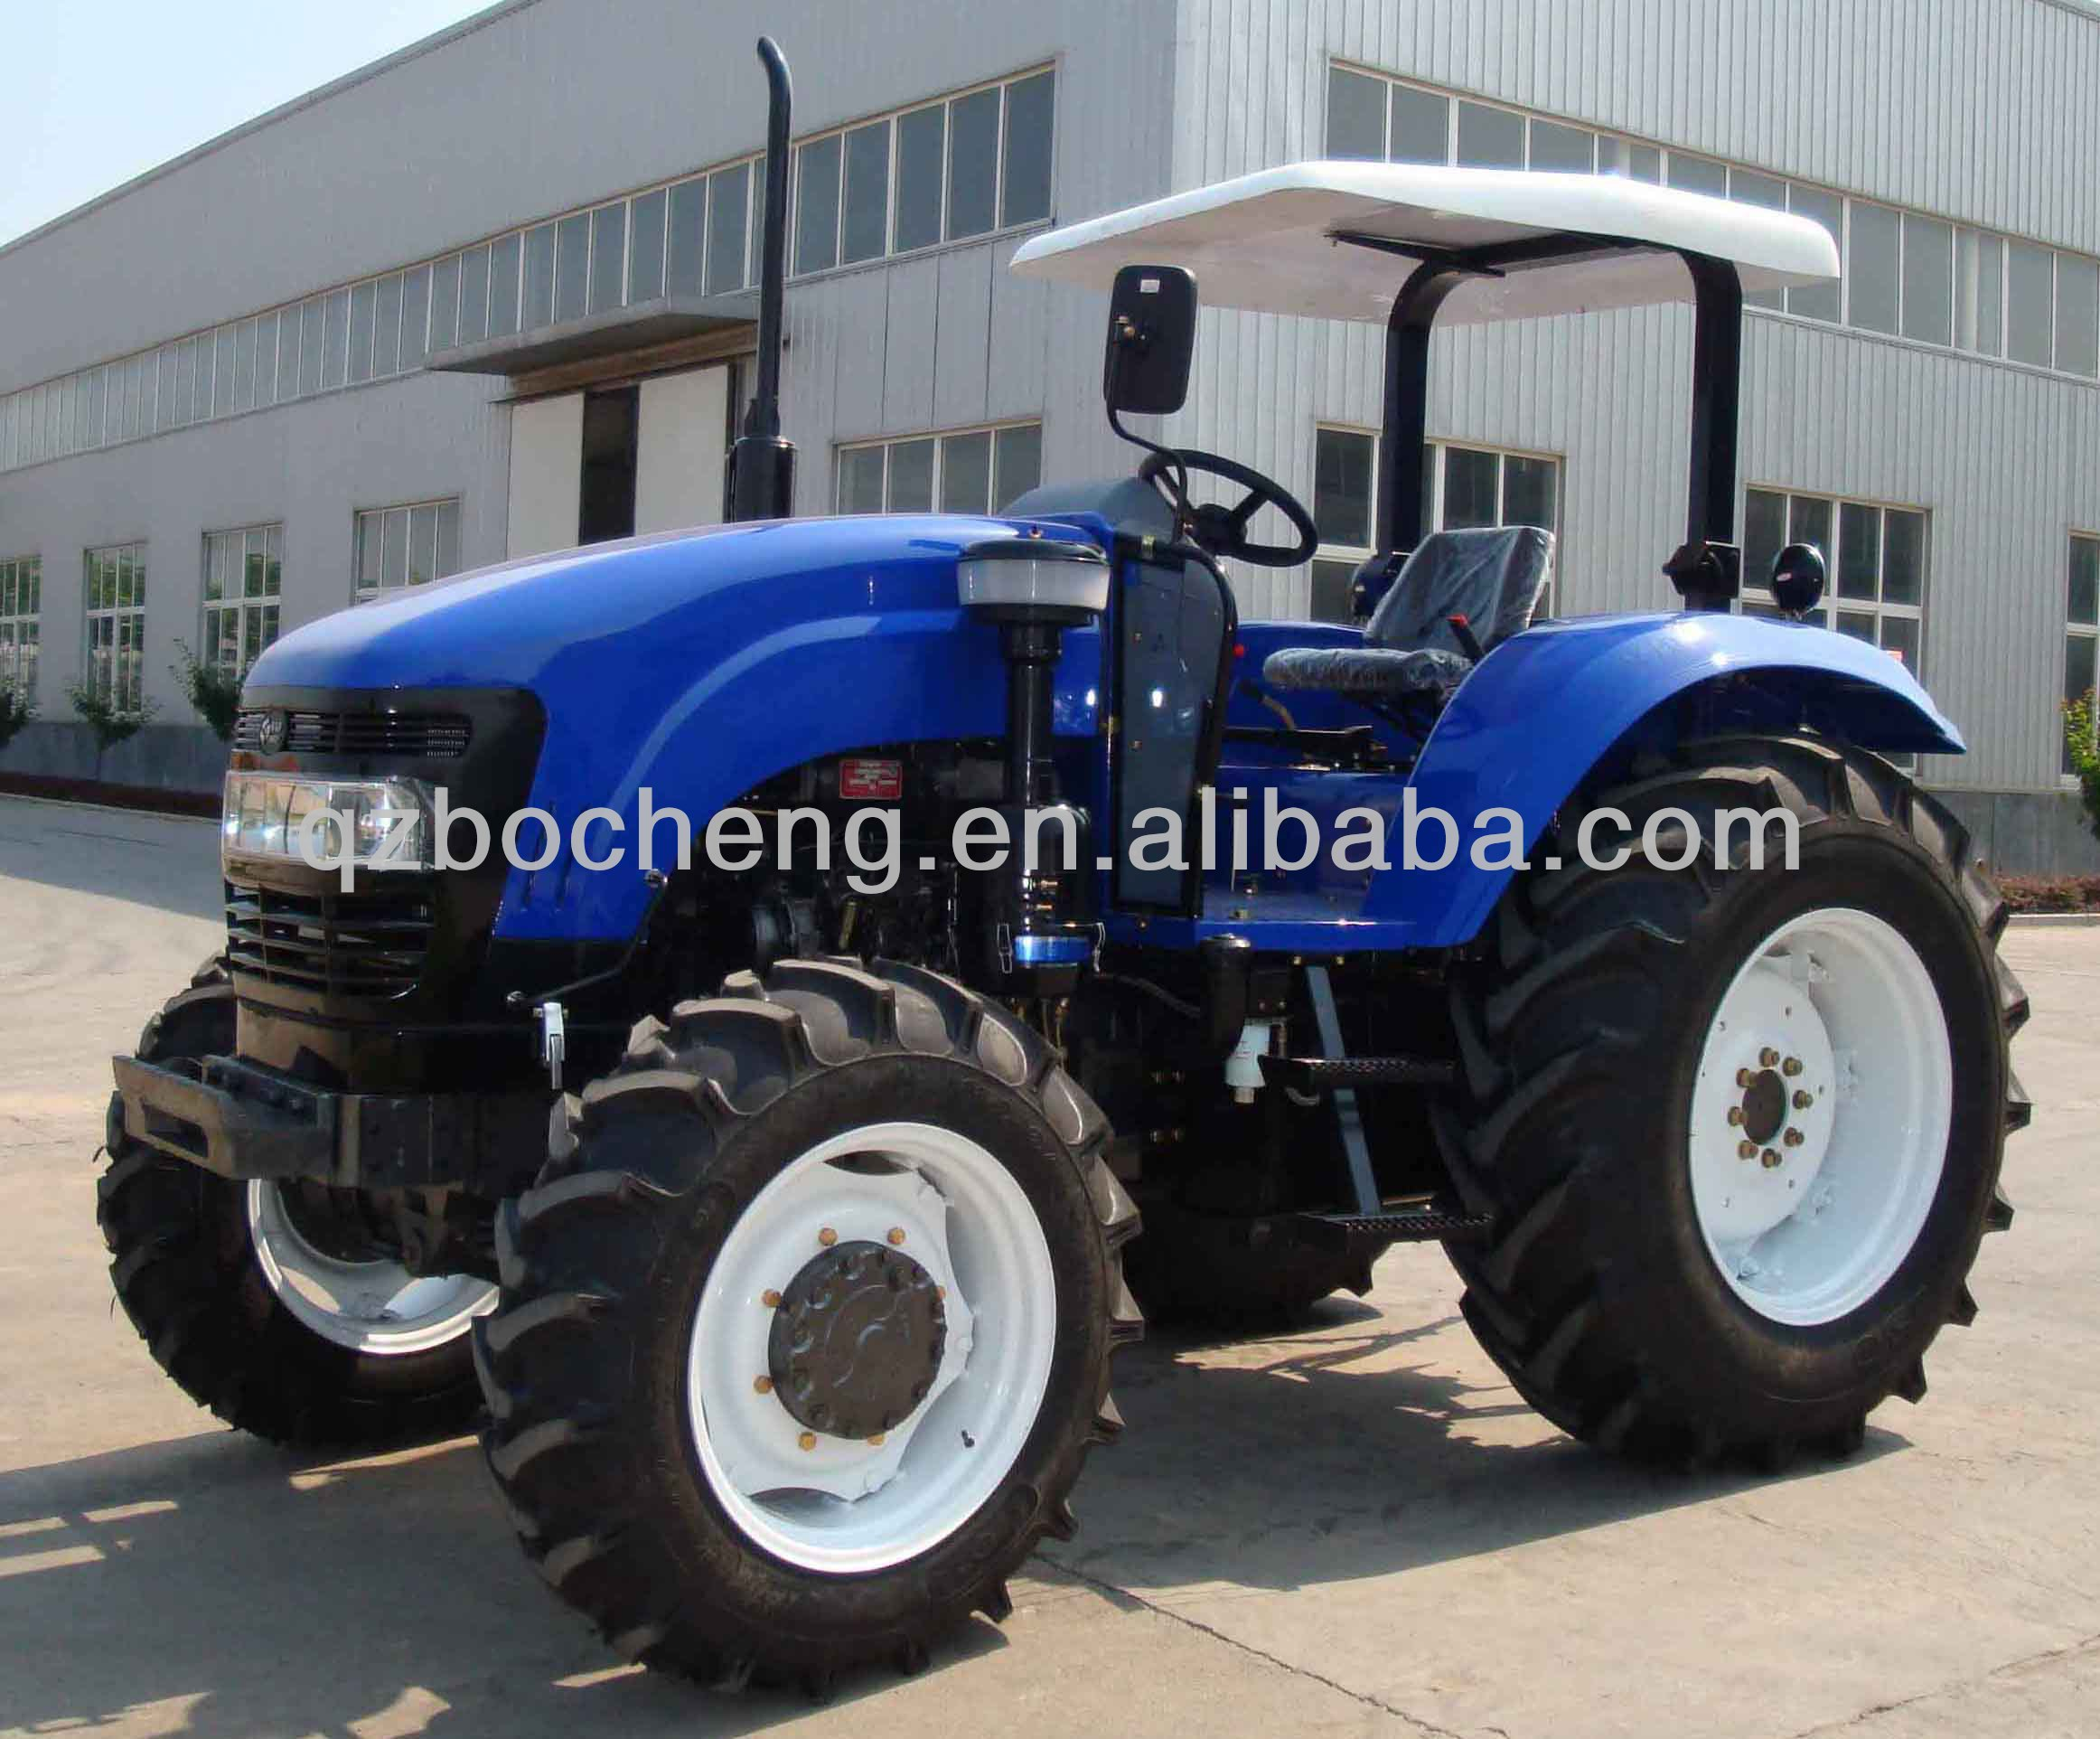 2014 new design dongfeng crawler tractor